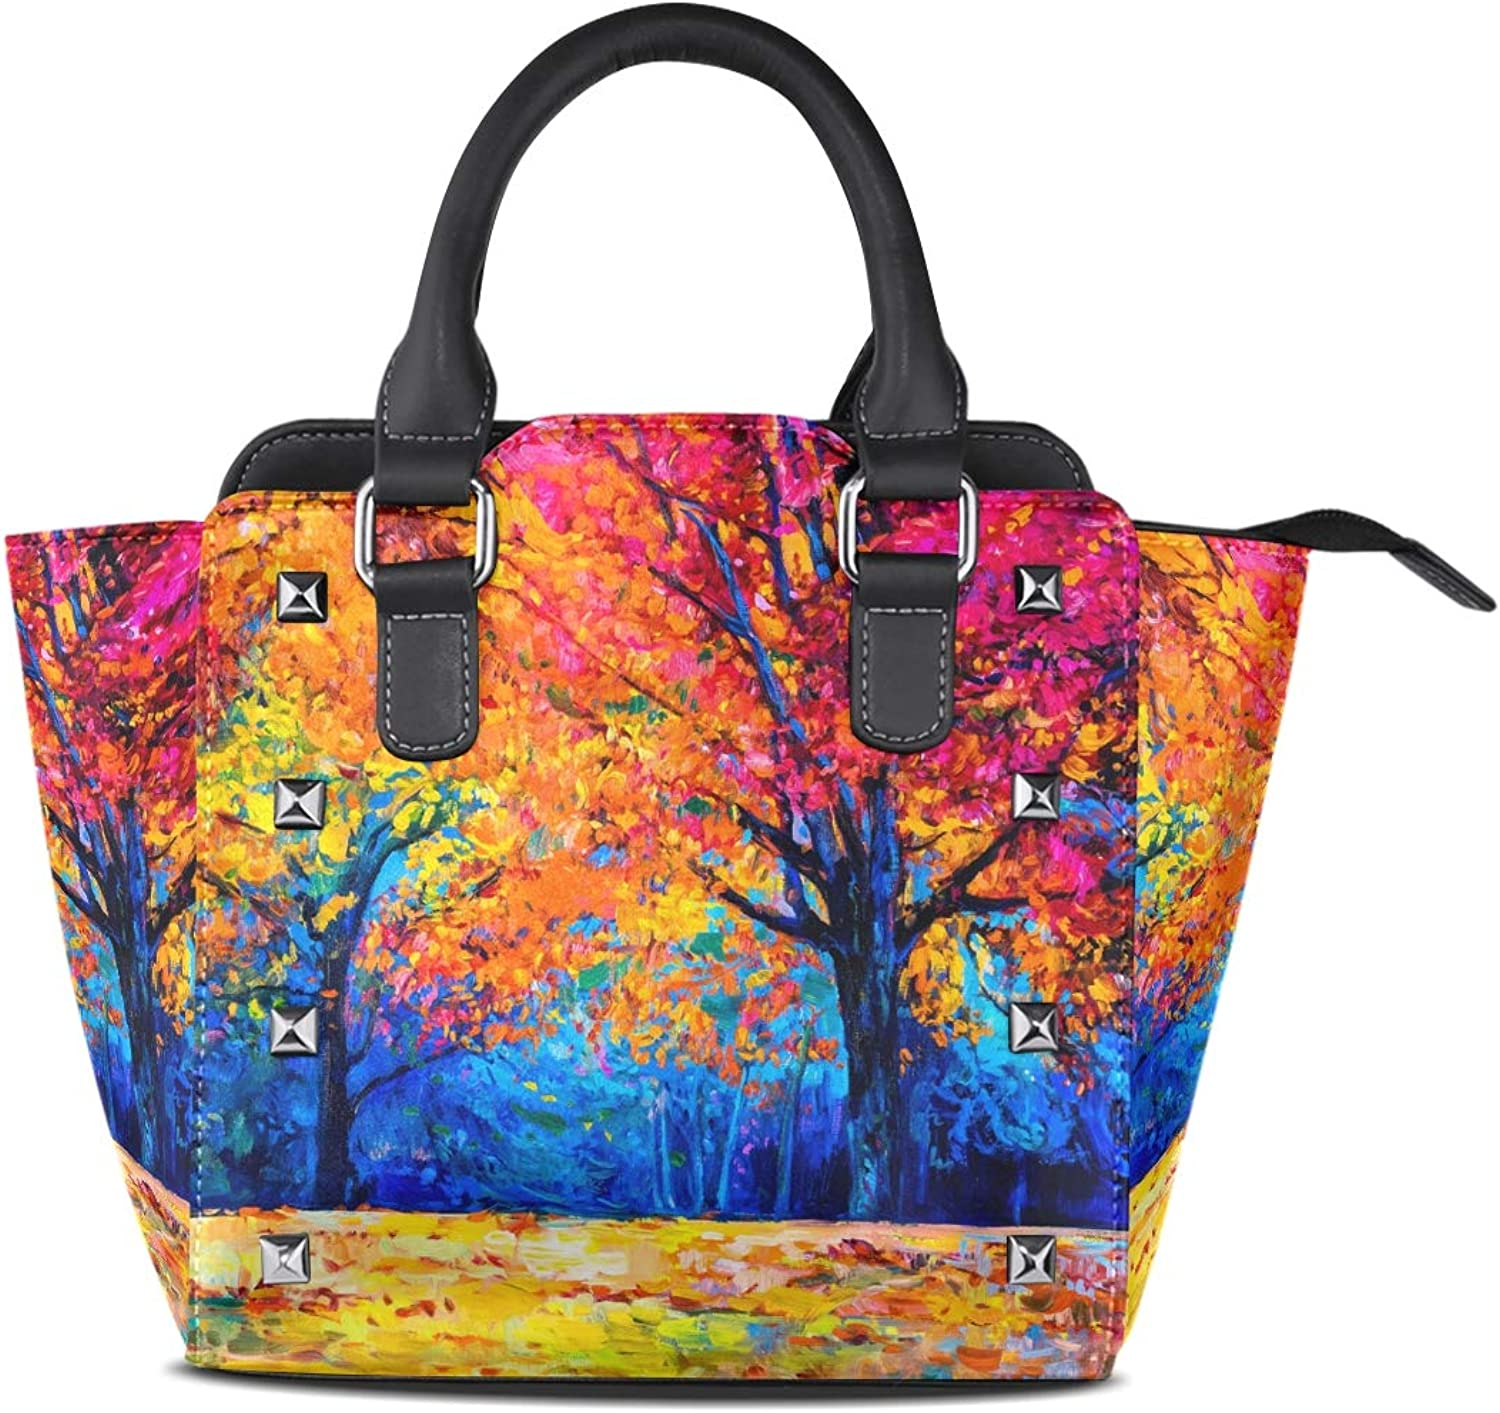 Women's Handbags Vintage Forest Tree Oil Painting Tote